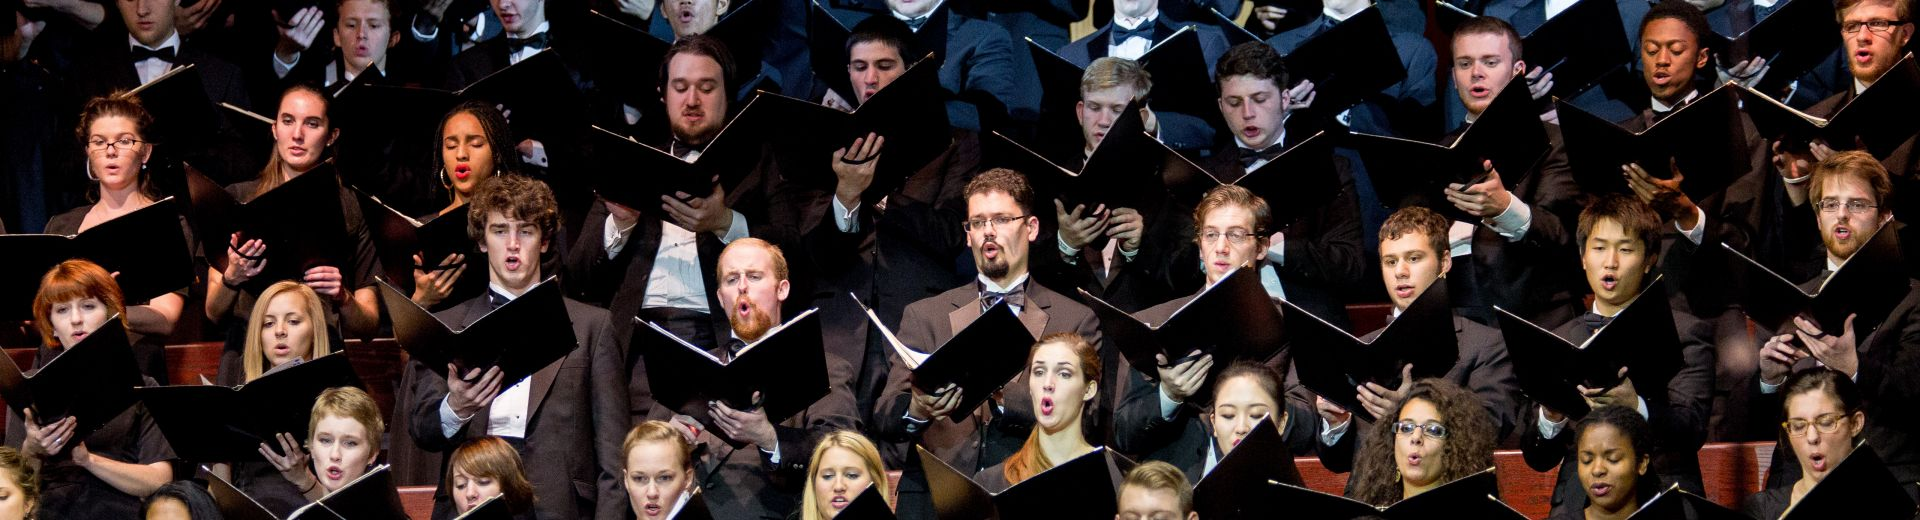 Large choir in concert dress, singing with music folders